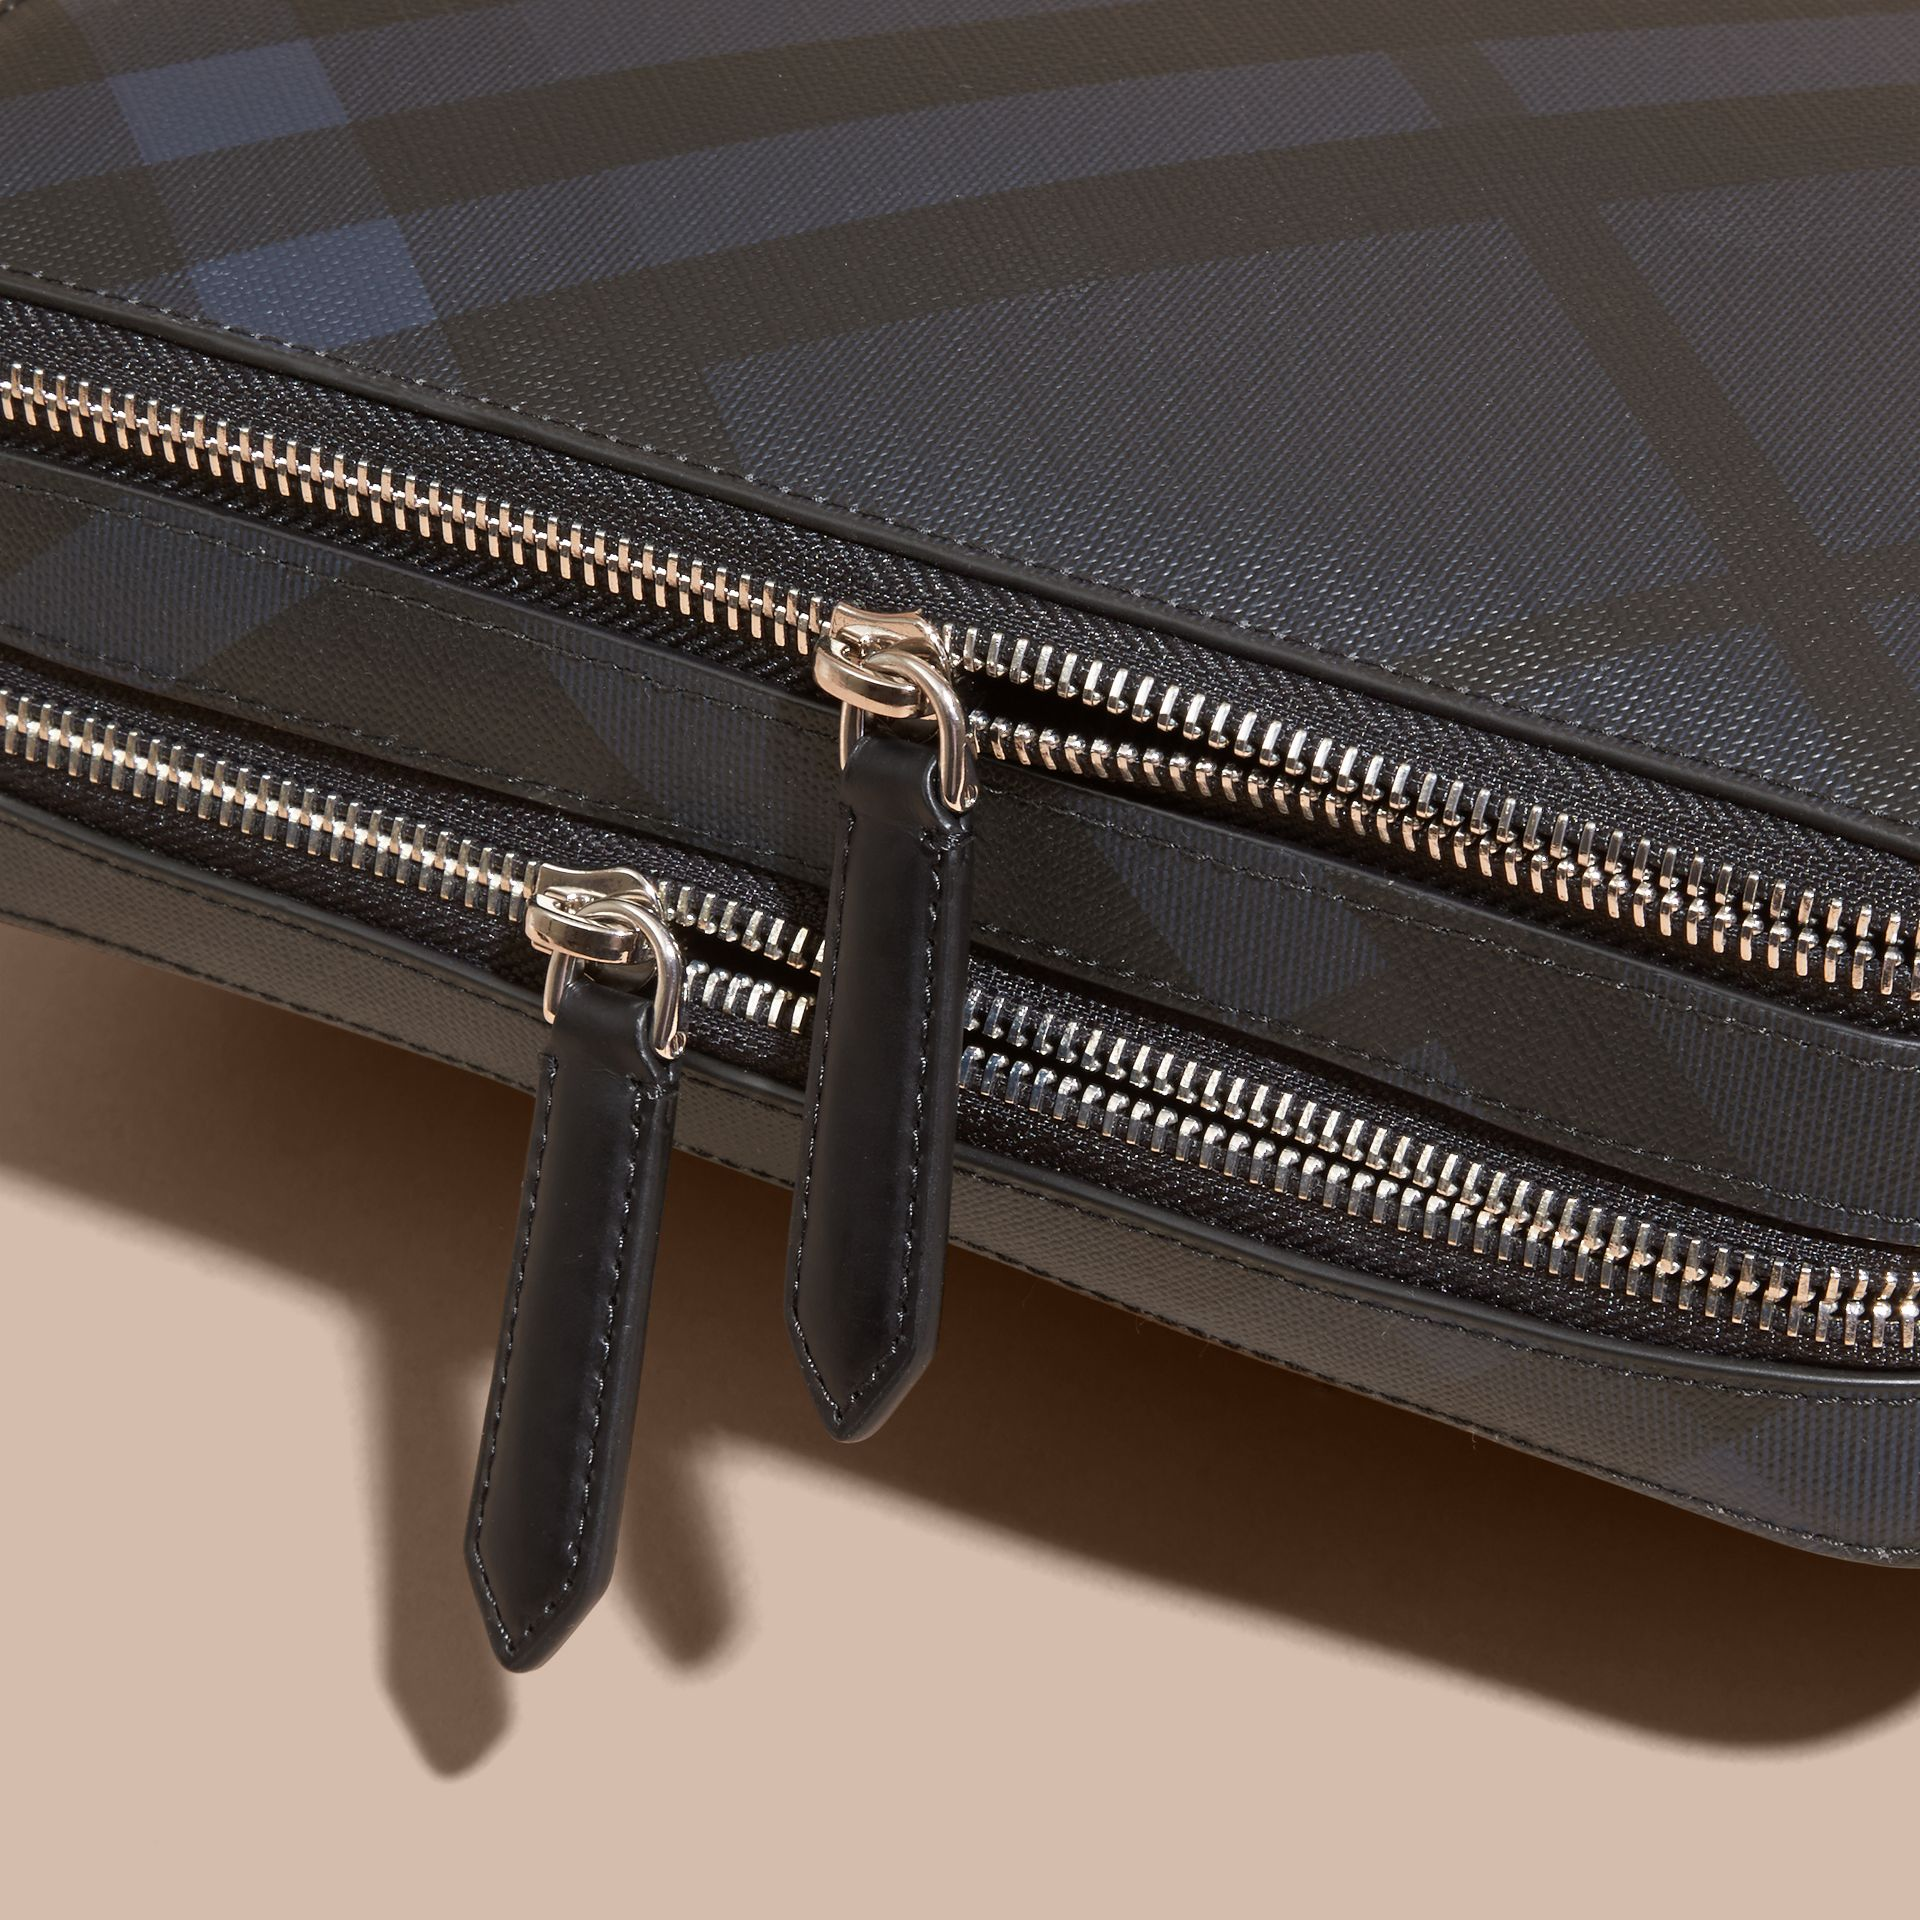 Leather-trimmed London Check Pouch in Navy/black - Men | Burberry Australia - gallery image 2